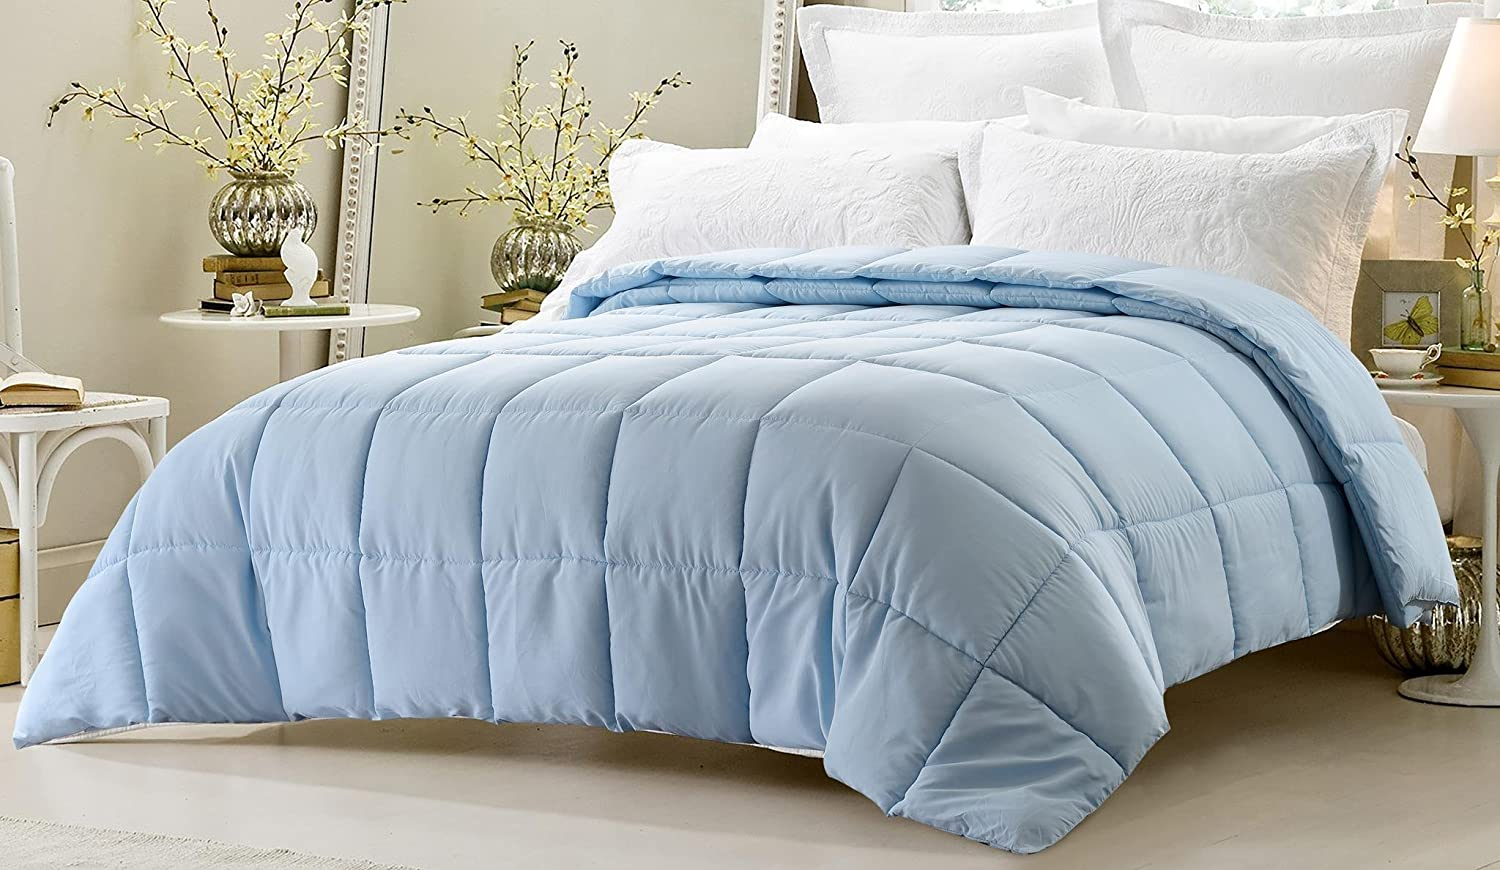 Amazon com web linens inc super oversized down alternative comforter fits pillow top beds king 110 x 96 light blue exclusively by blowout